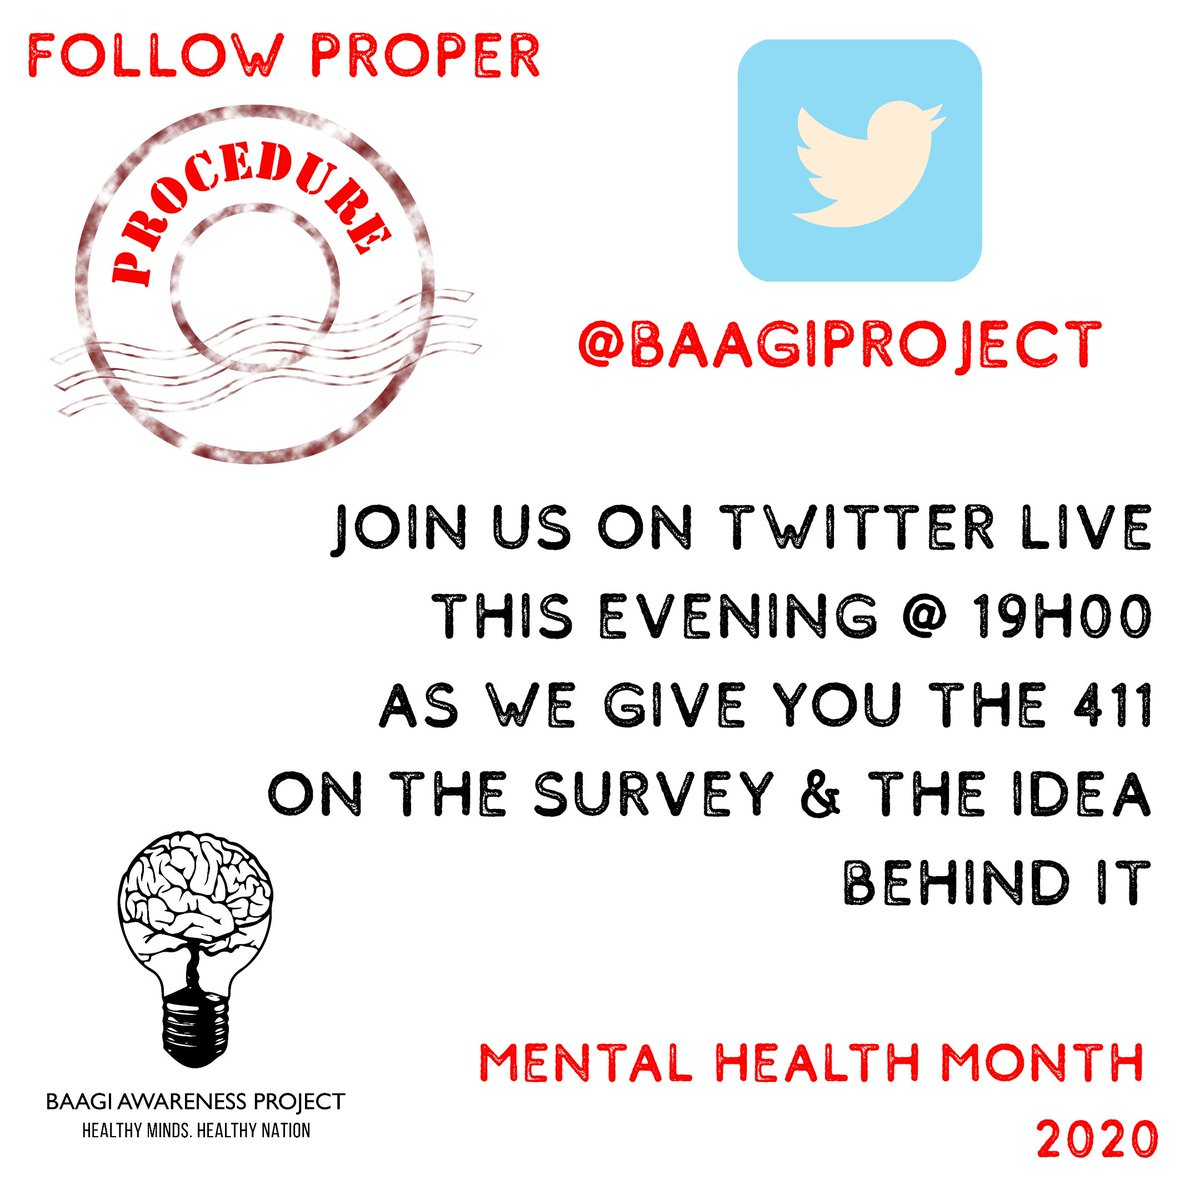 Twitter-verse, today is your turn 💡  Join us live as we share info on the #FollowProperProcedure survey 🗳️  It's a date! ☑️  #MentalHealthAwarenessMonth #MentalHealthAwareness #MentalHealthMatters #Baagi https://t.co/k9GUybkZDR